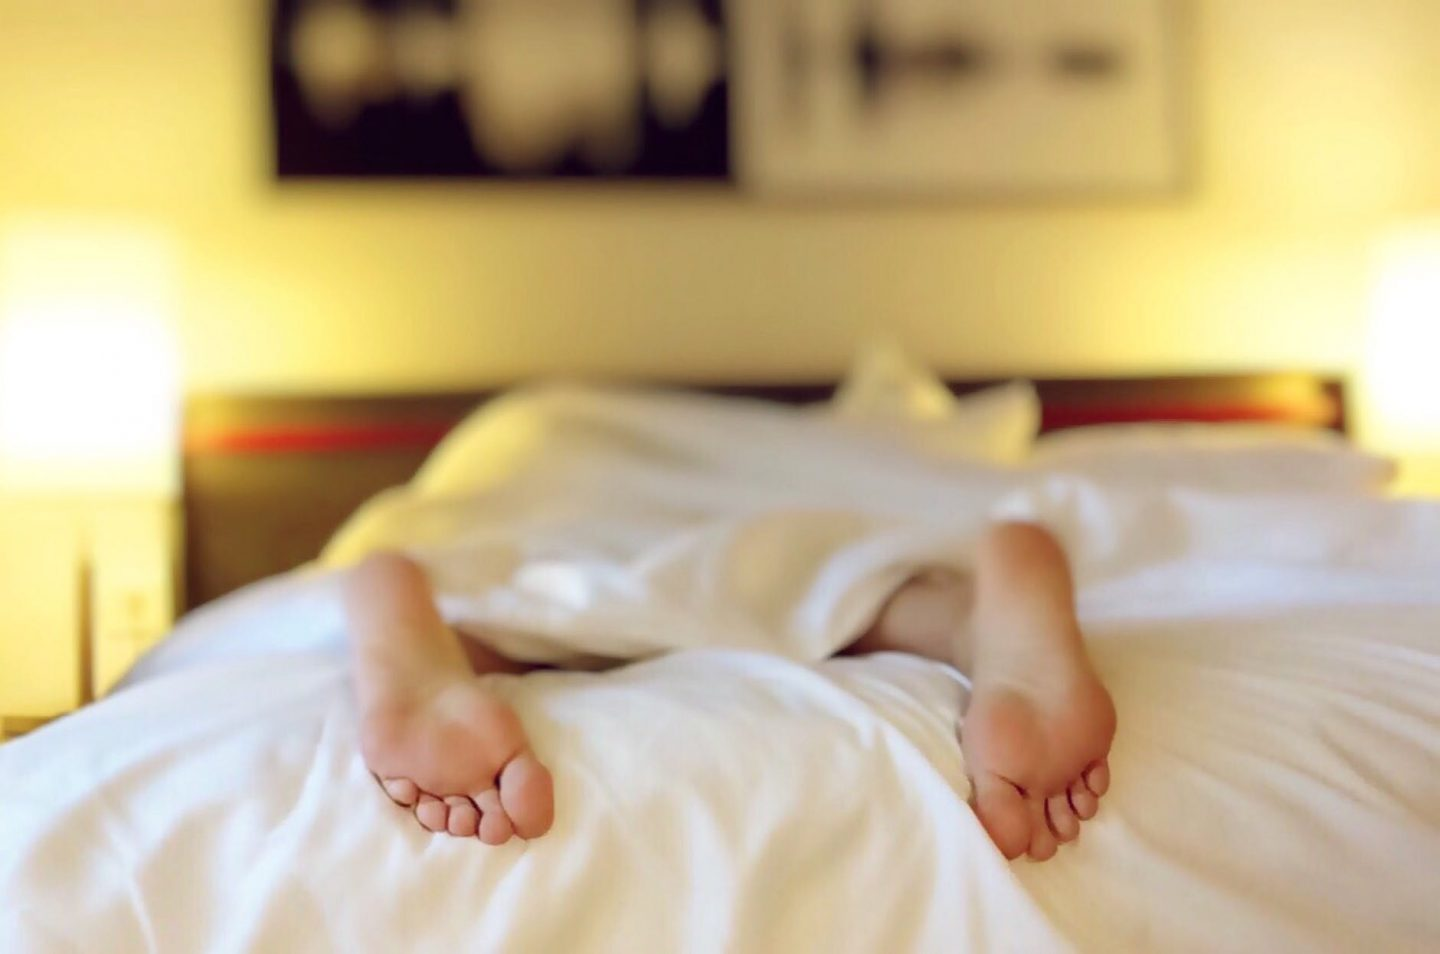 SAD: Woman in bed with bare feet dangling off end of the bed.